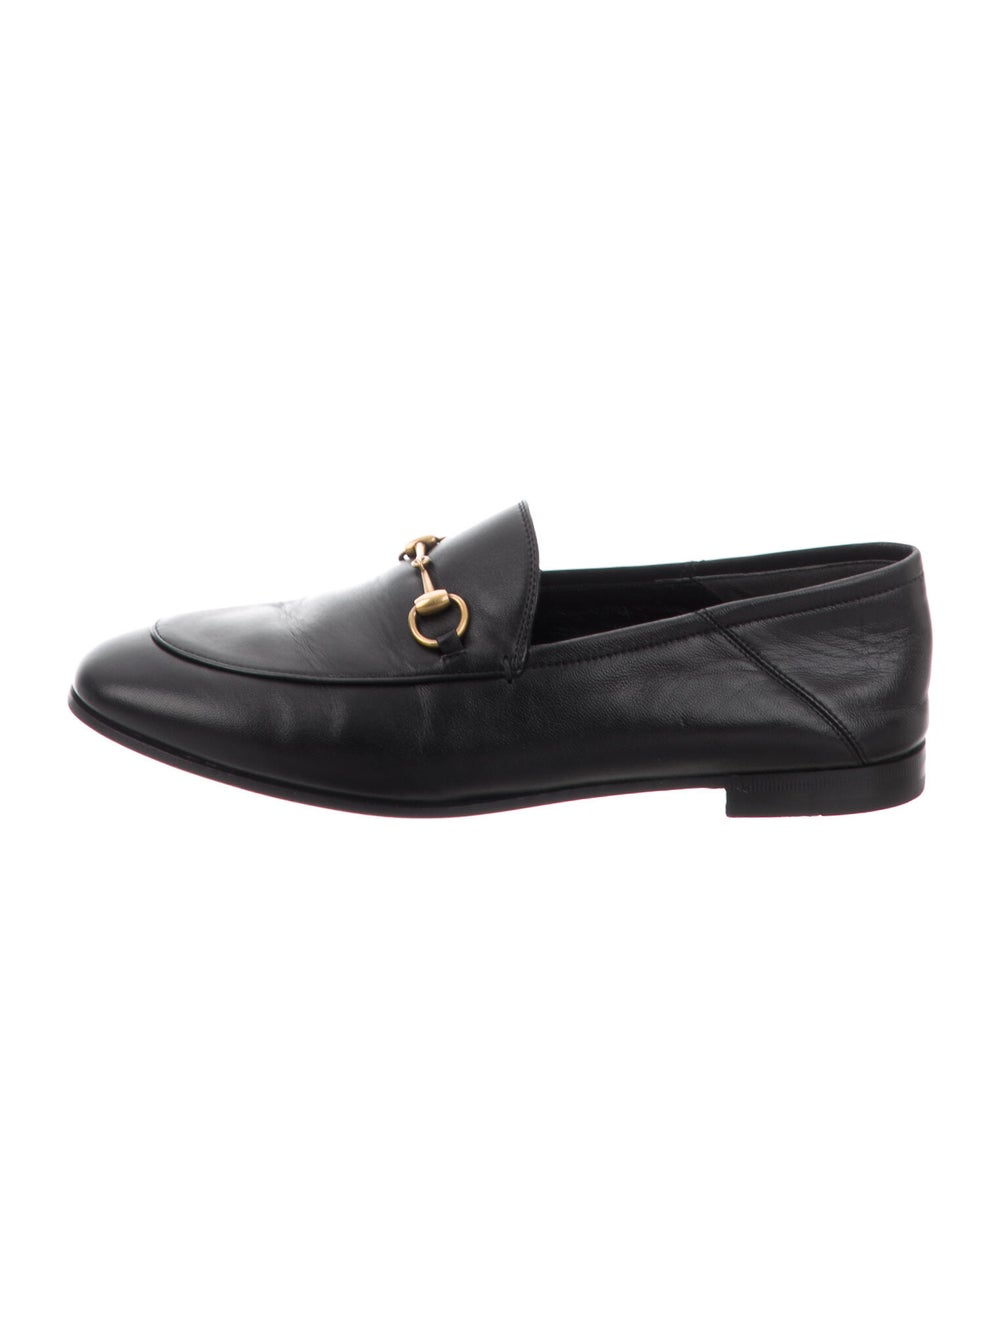 Gucci Horsebit Accent Leather Loafers Black - image 1